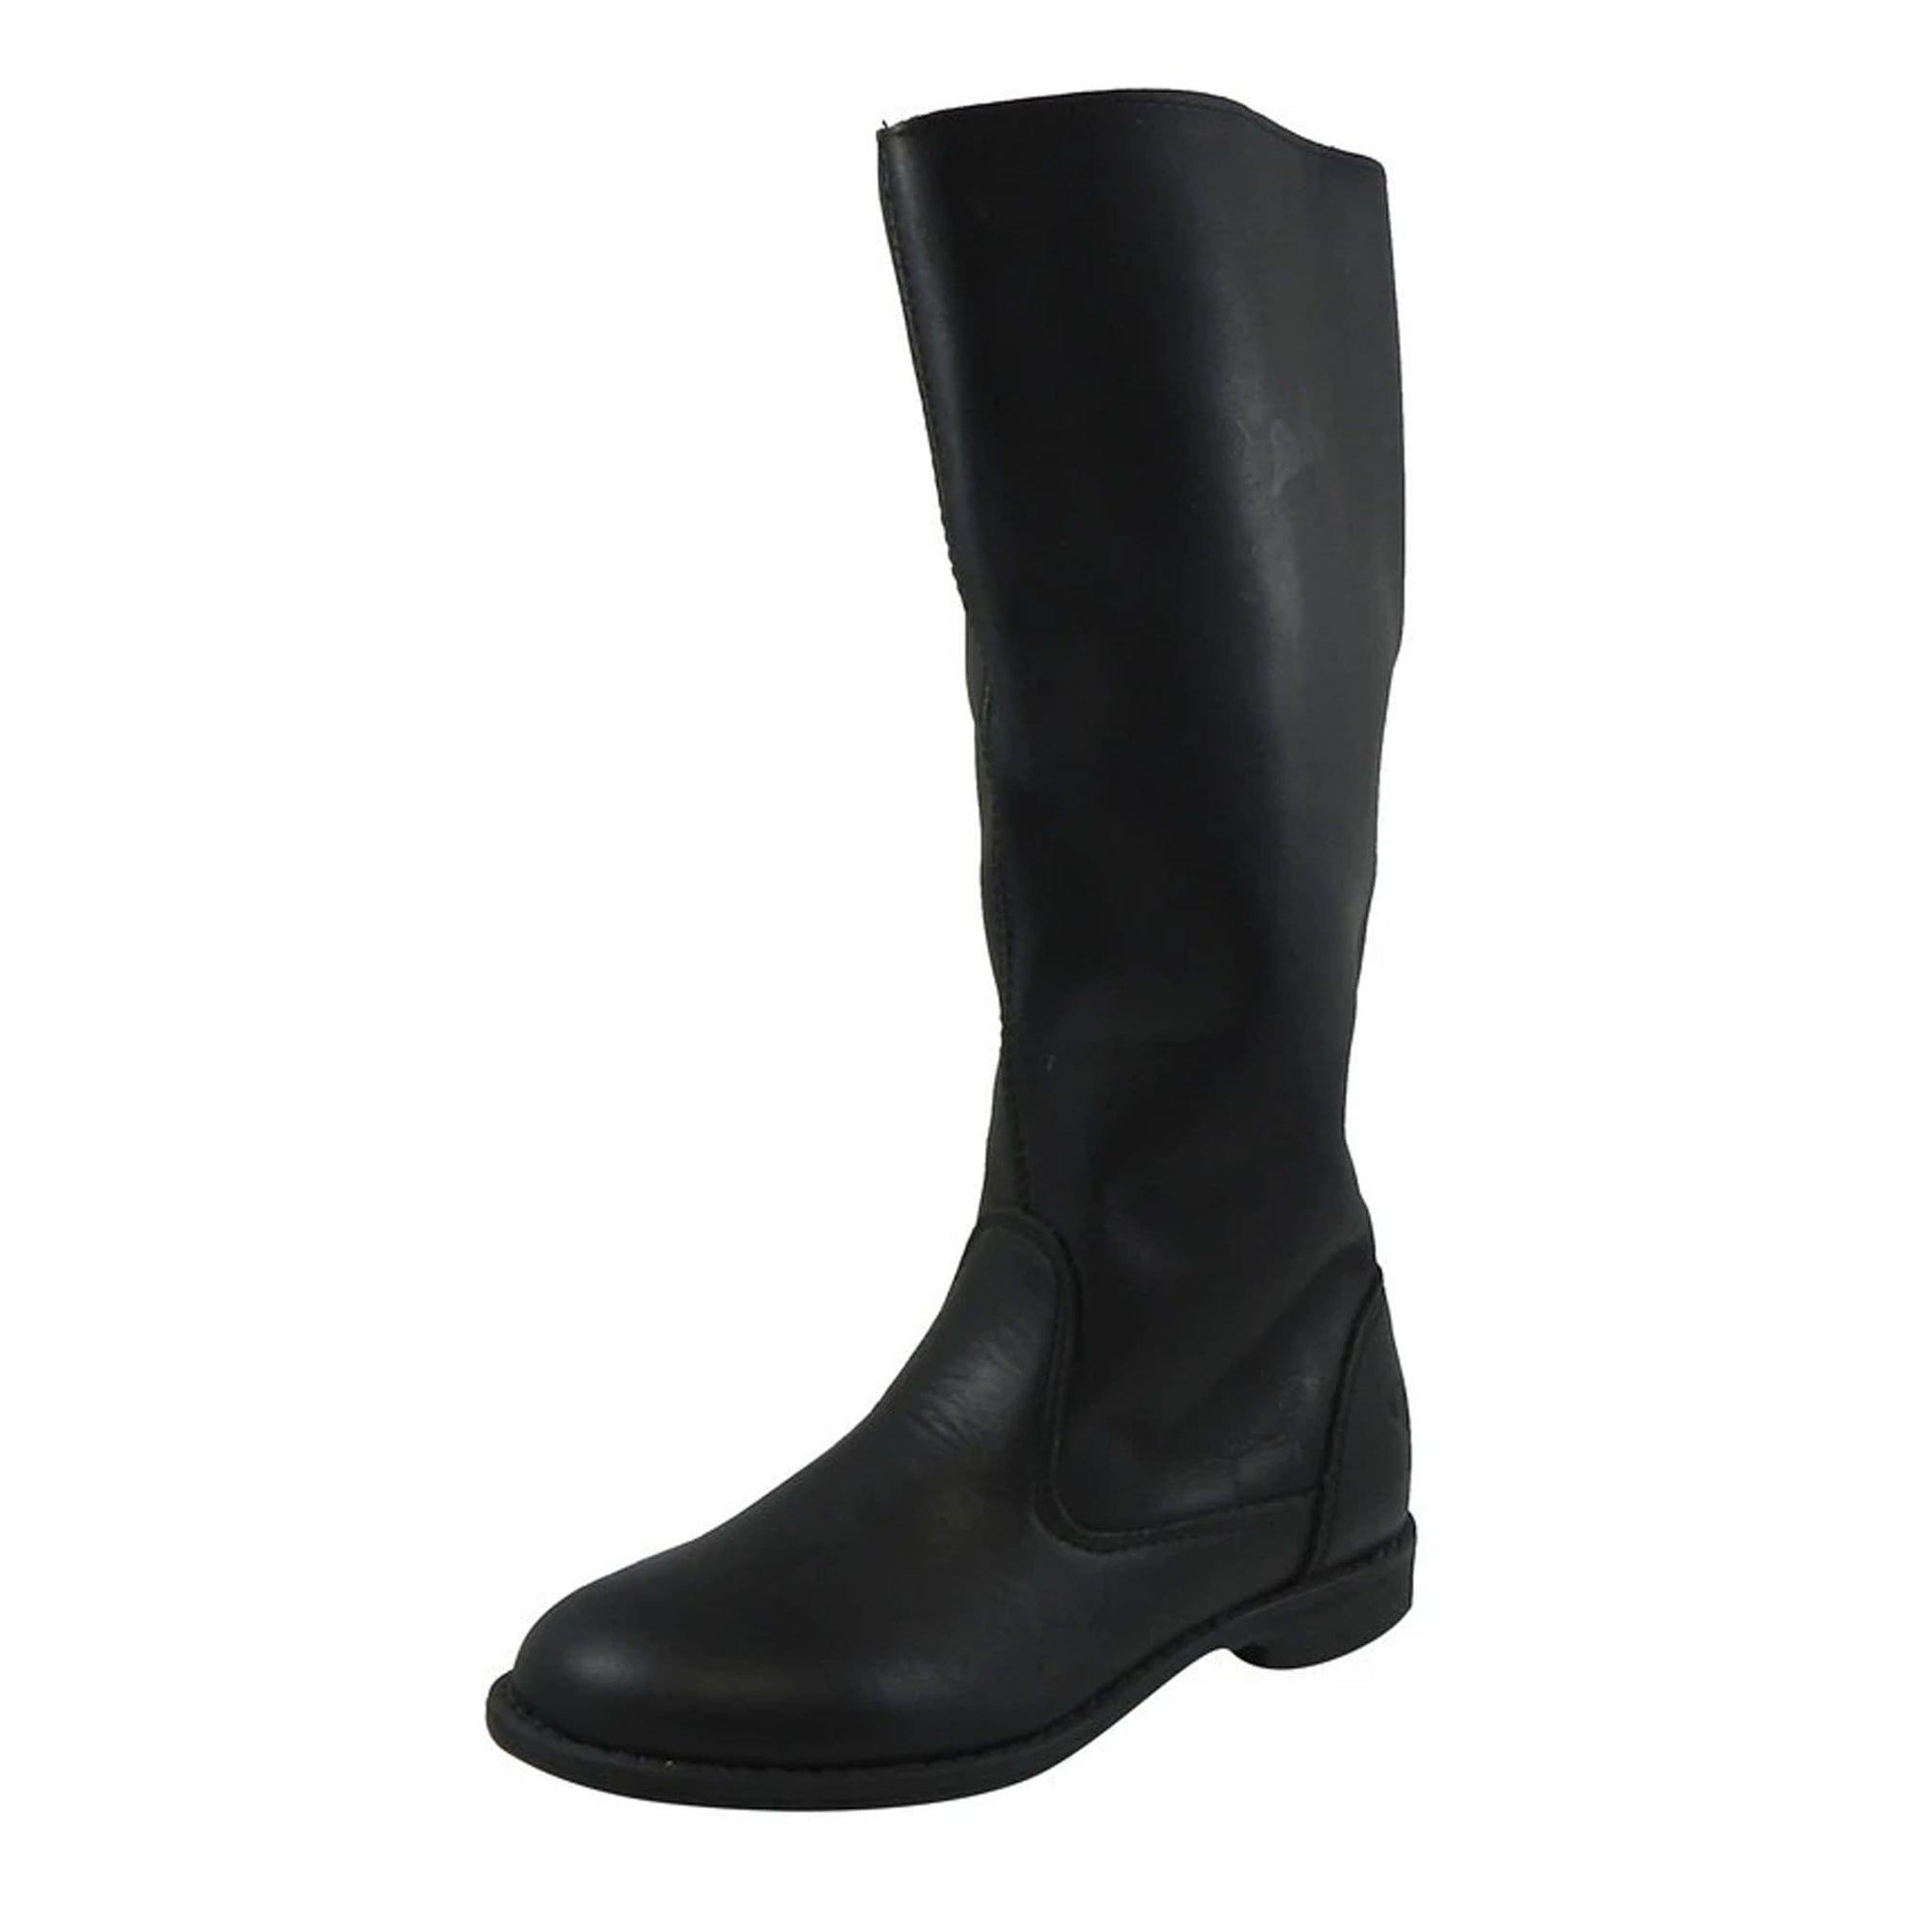 Old Soles Pride Riding Boot Black 2014DBL